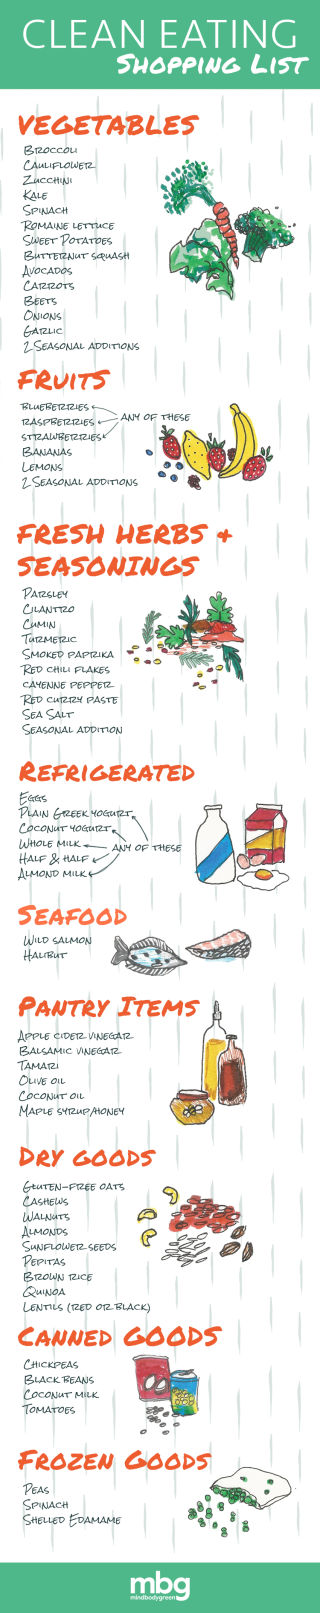 Want To Eat Clean HereS The Only Shopping List YouLl Ever Need